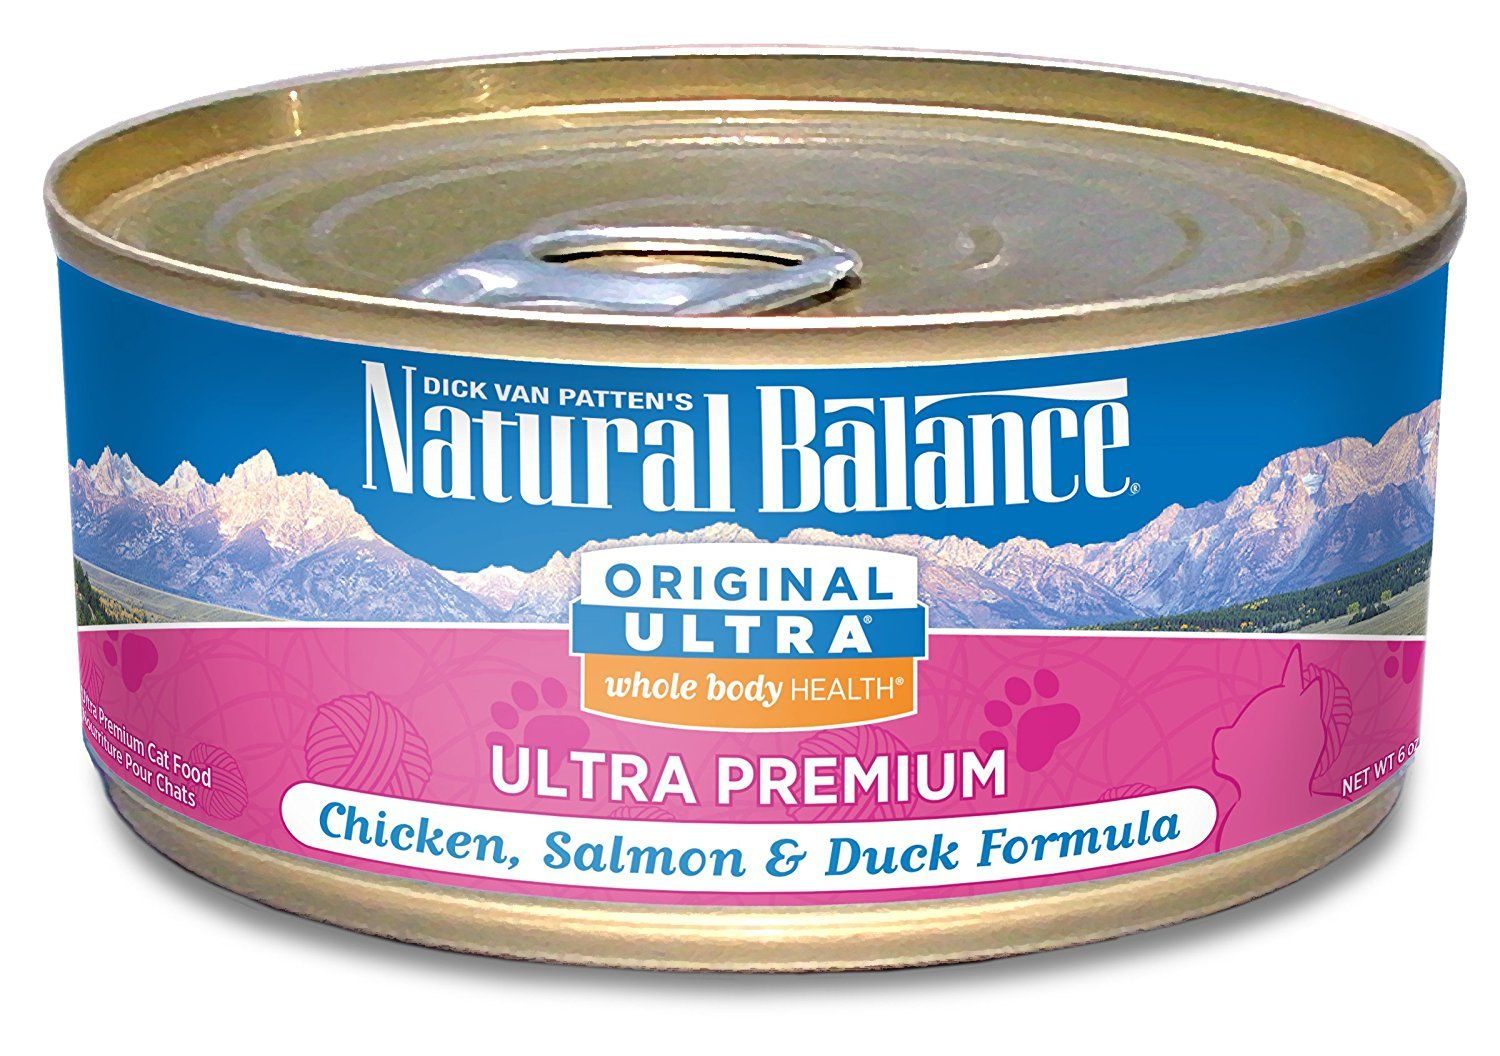 Natural Balance Original Ultra Whole Body Health Canned